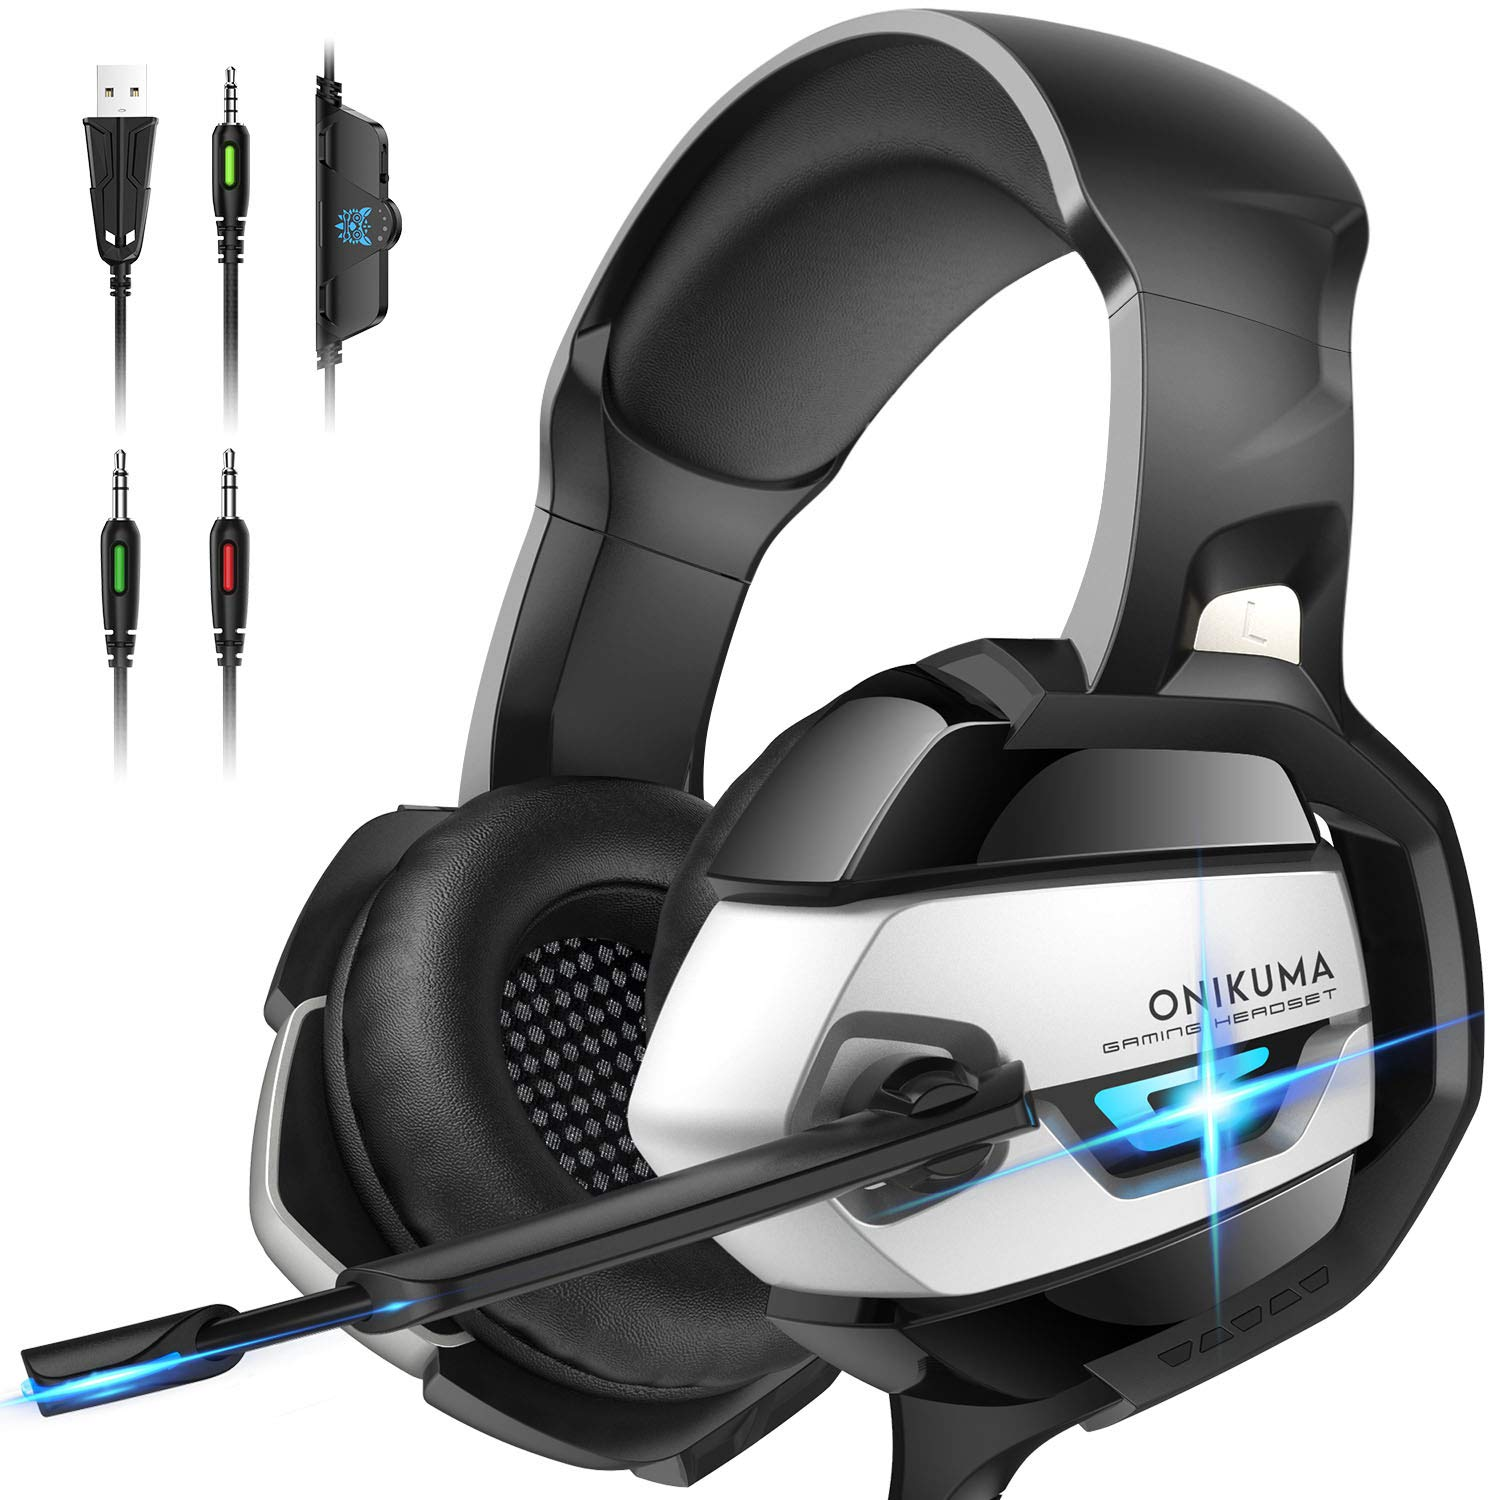 ONIKUMA Gaming Headset - Xbox One Headset PS4 Headset PC Headset with Noise Canceling Mic &7.1 Surround Bass, Gaming Headphones